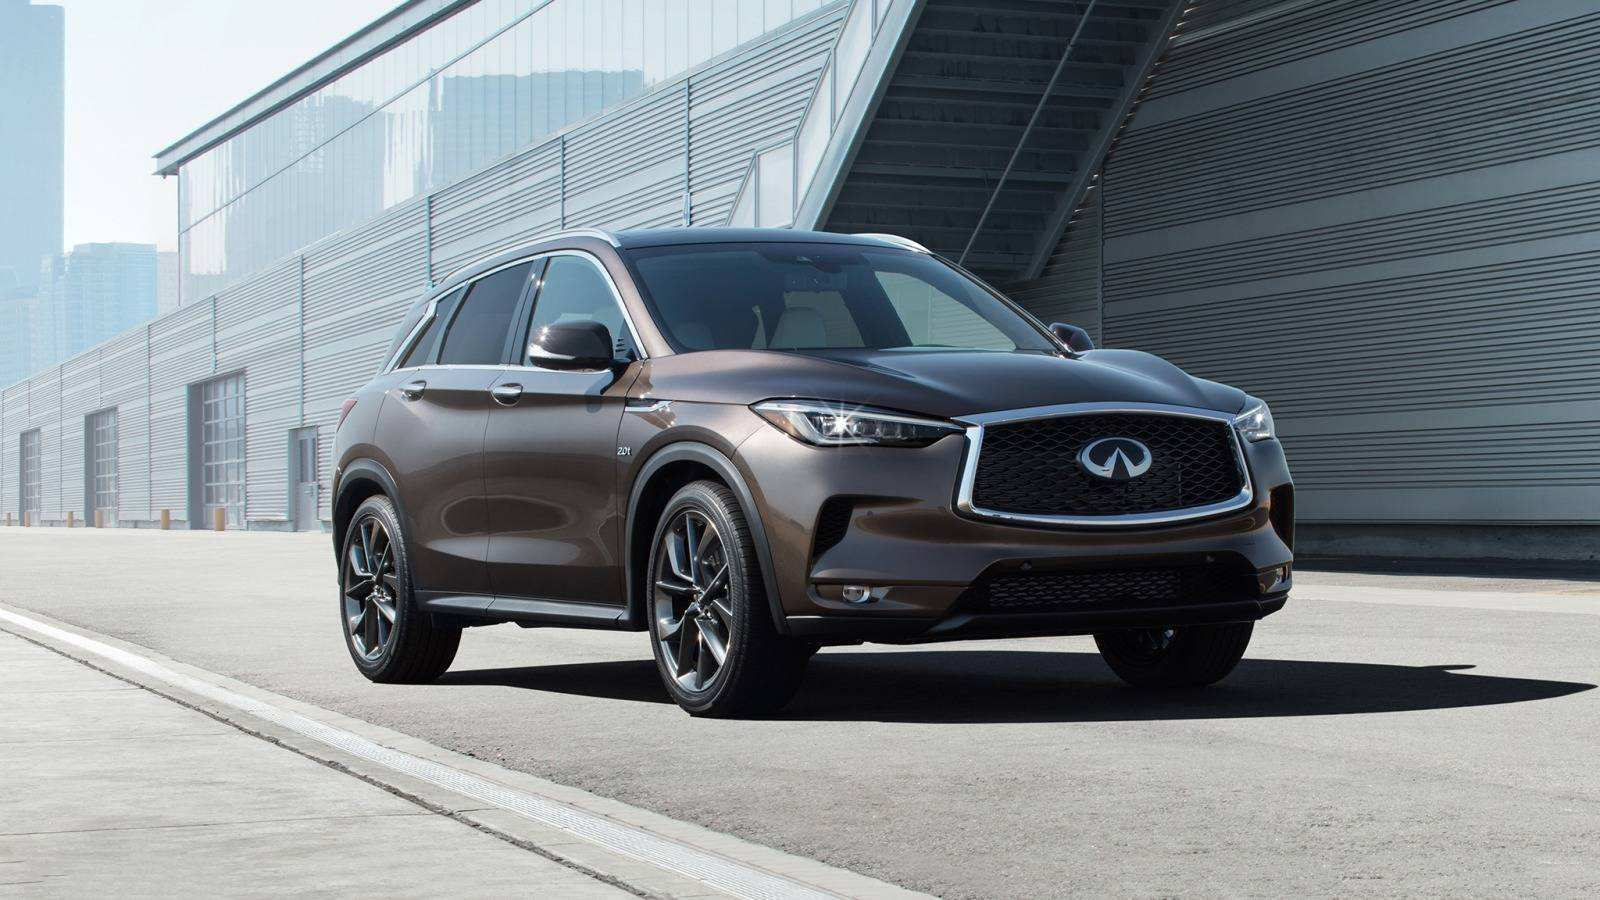 35 New 2019 Infiniti Qx50 Review Images with 2019 Infiniti Qx50 Review